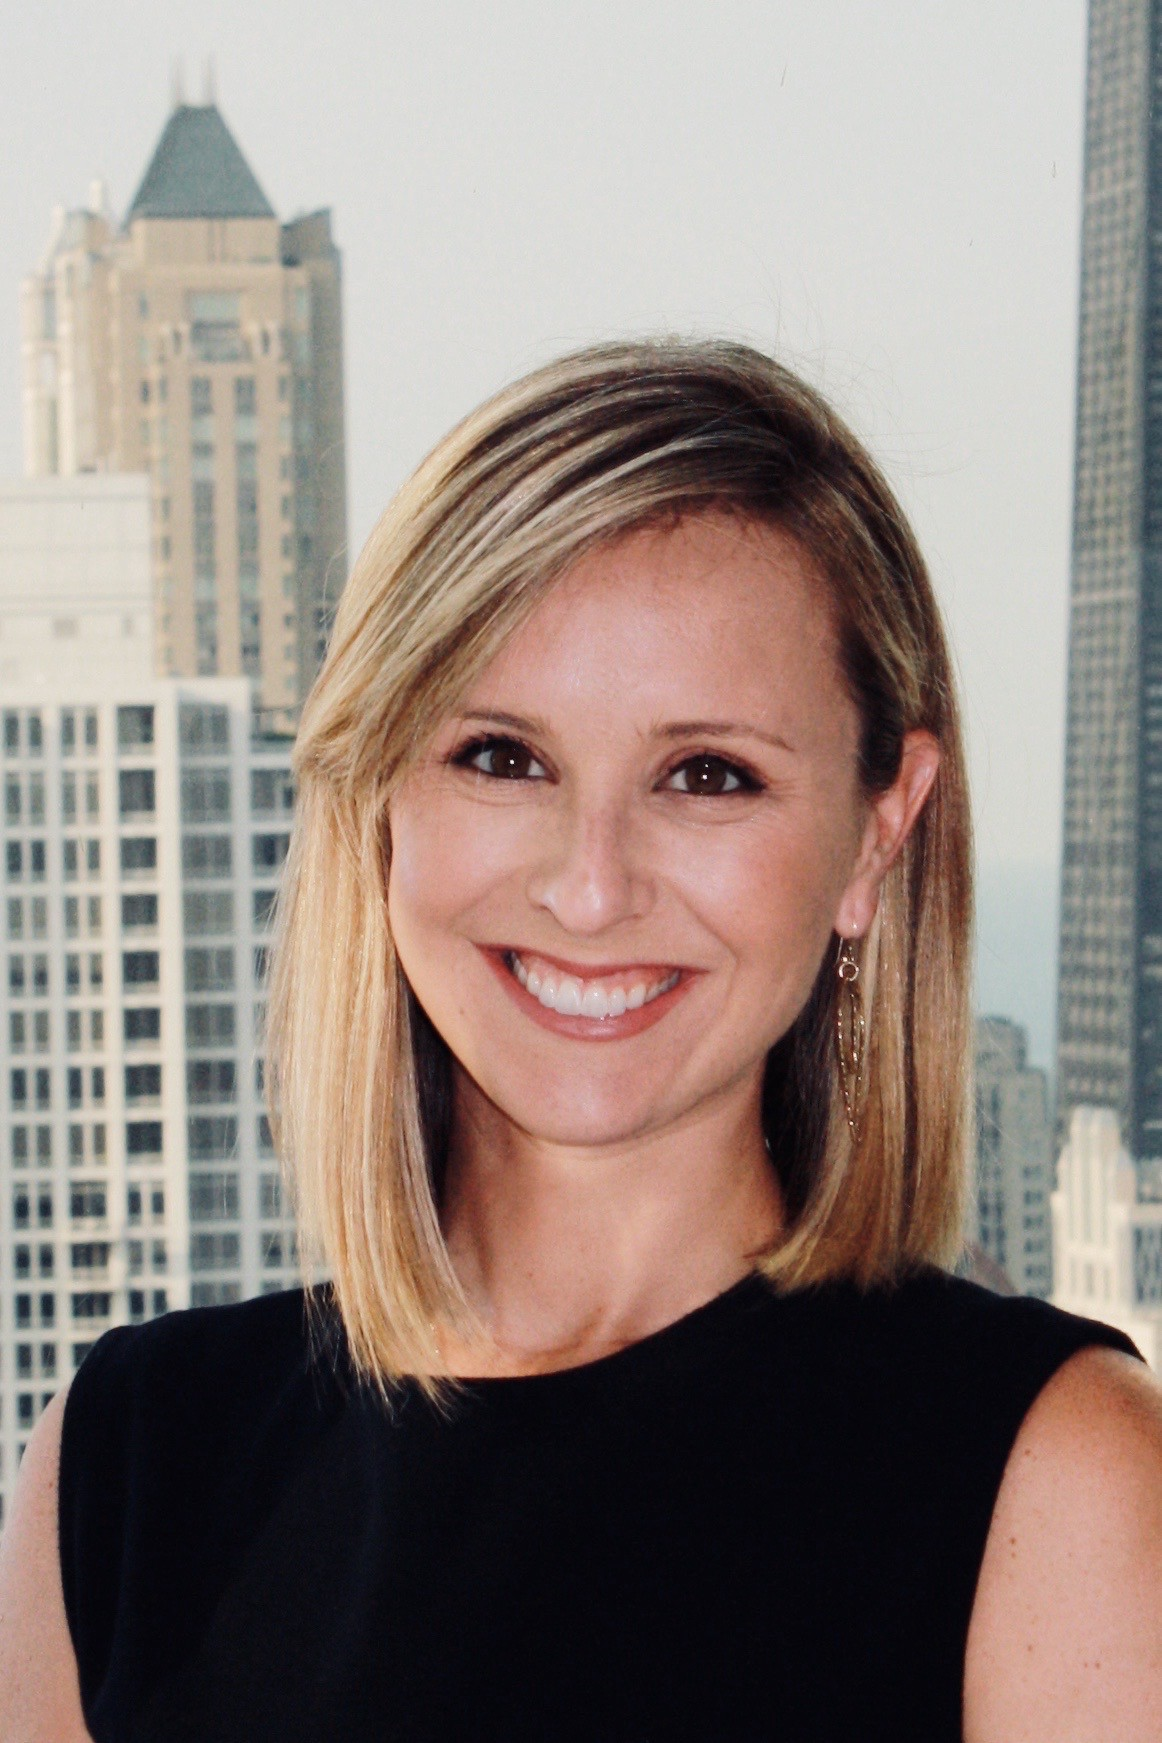 Pop Quiz, Monday with Aimée Eichelberger, Founder and CEO of Superior Public Relations